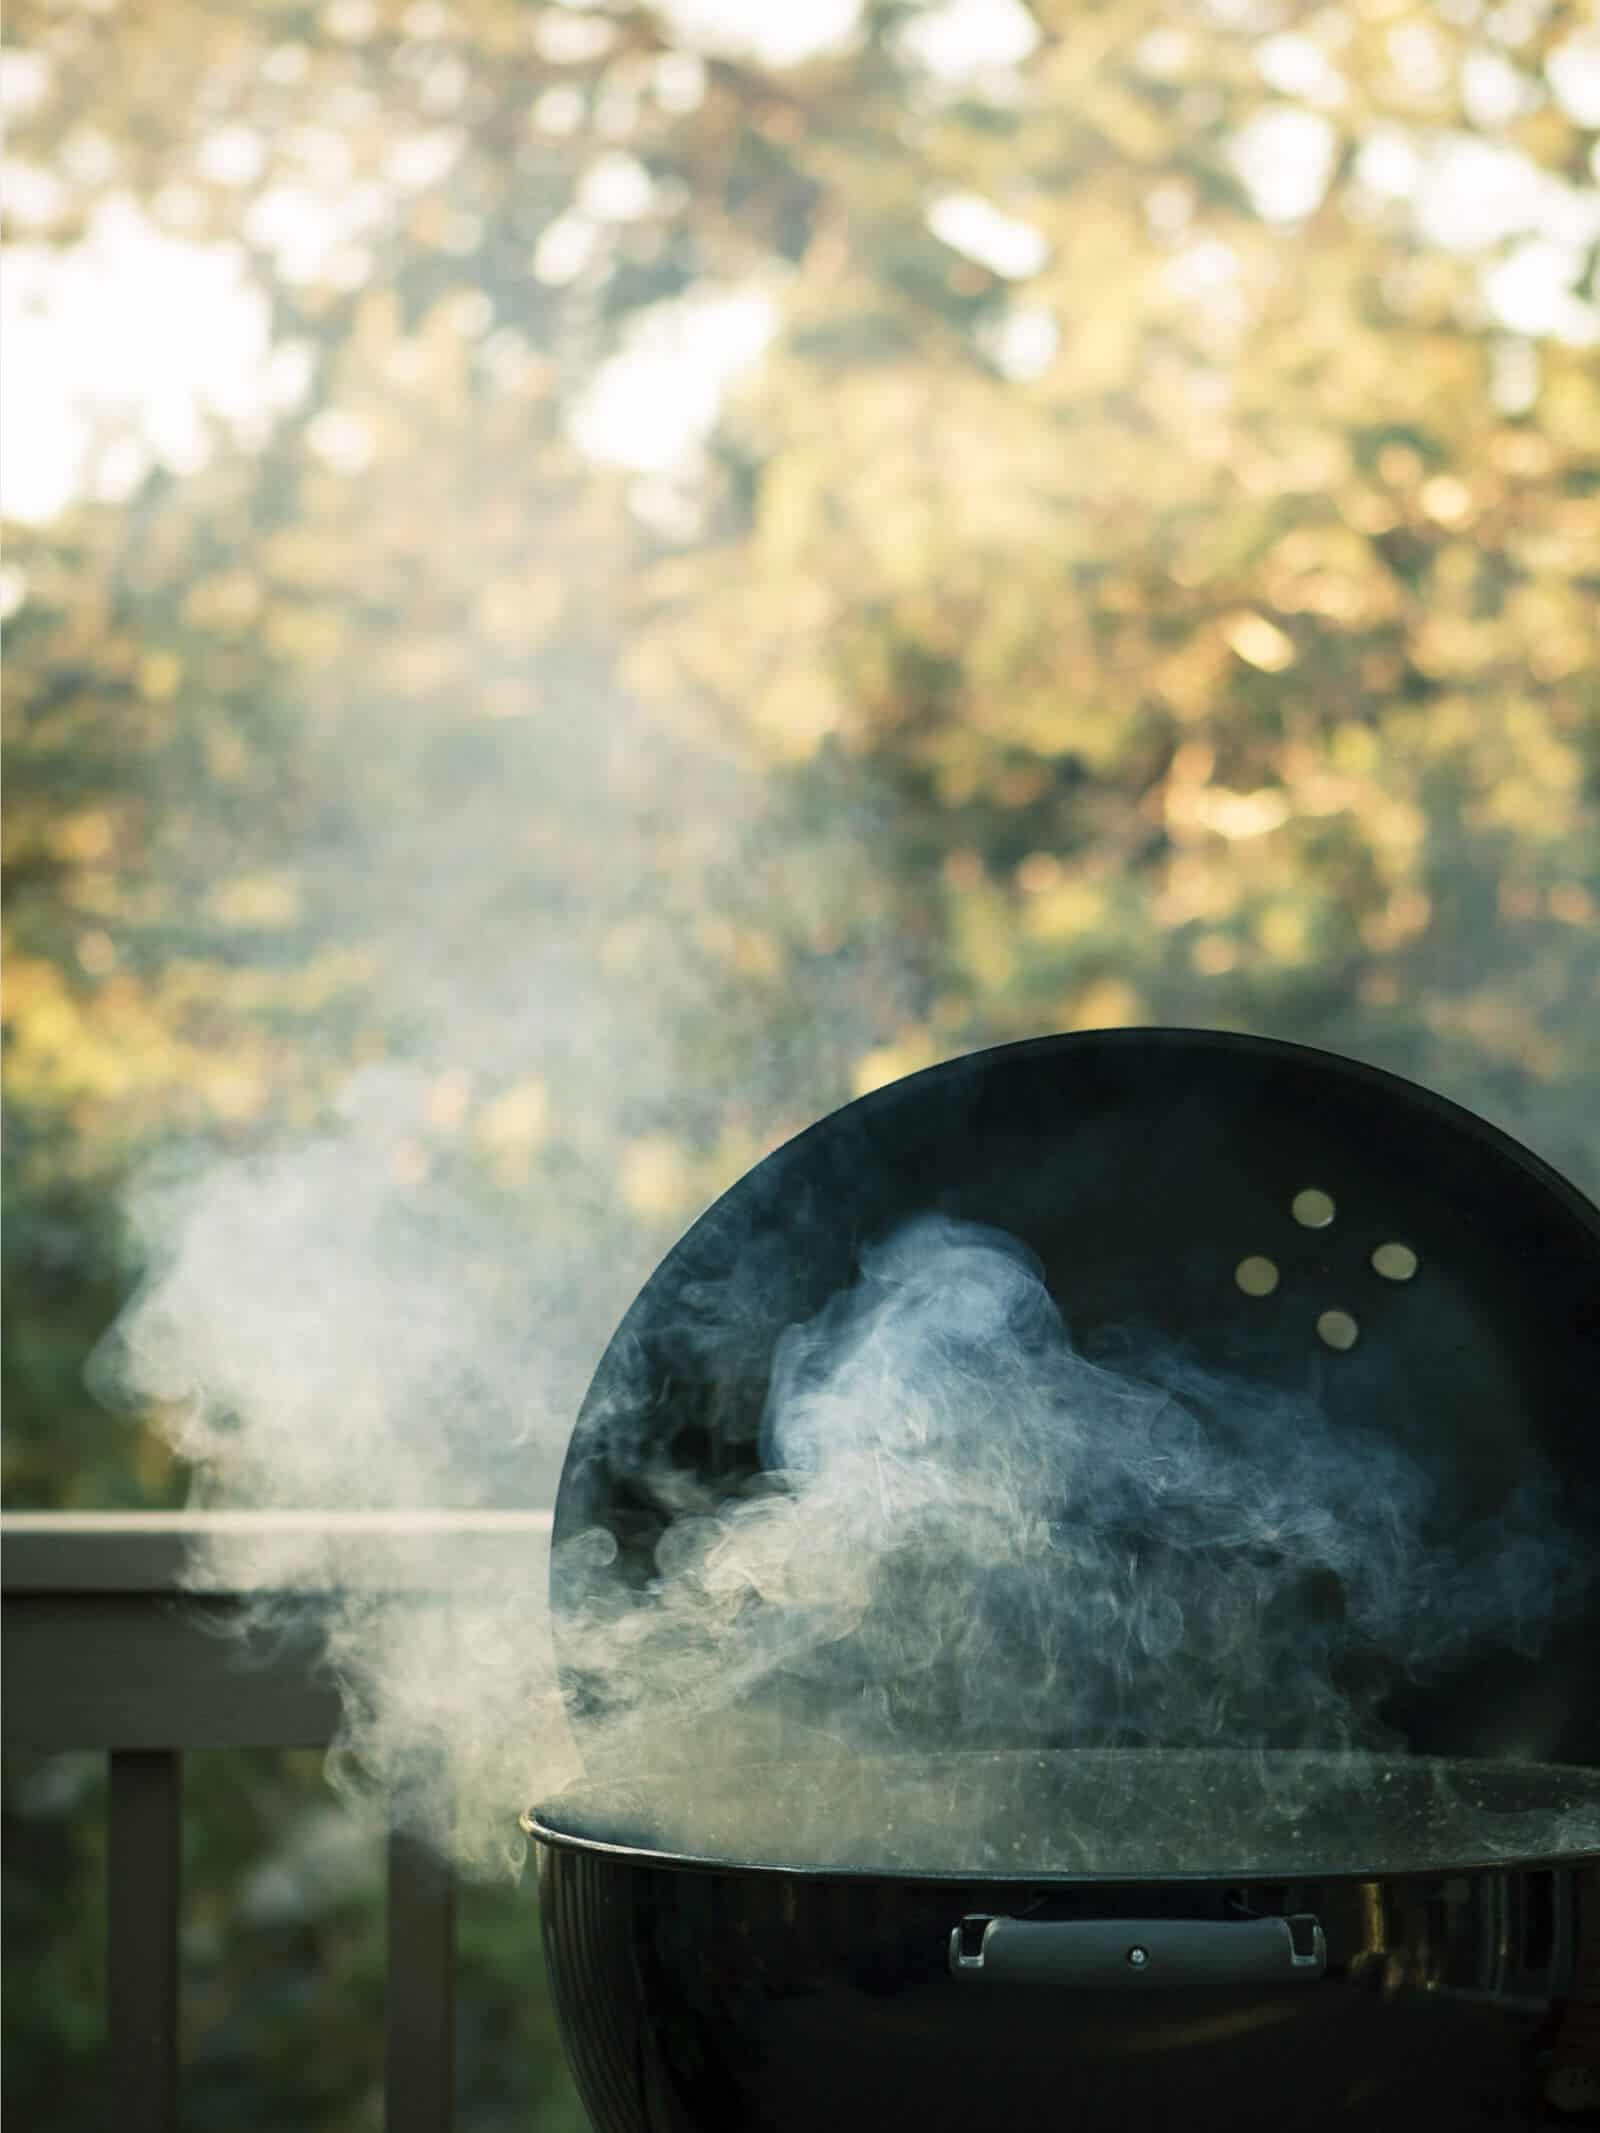 Harness the fun, flavor, and power of wood smoke and fire for your outdoor meals